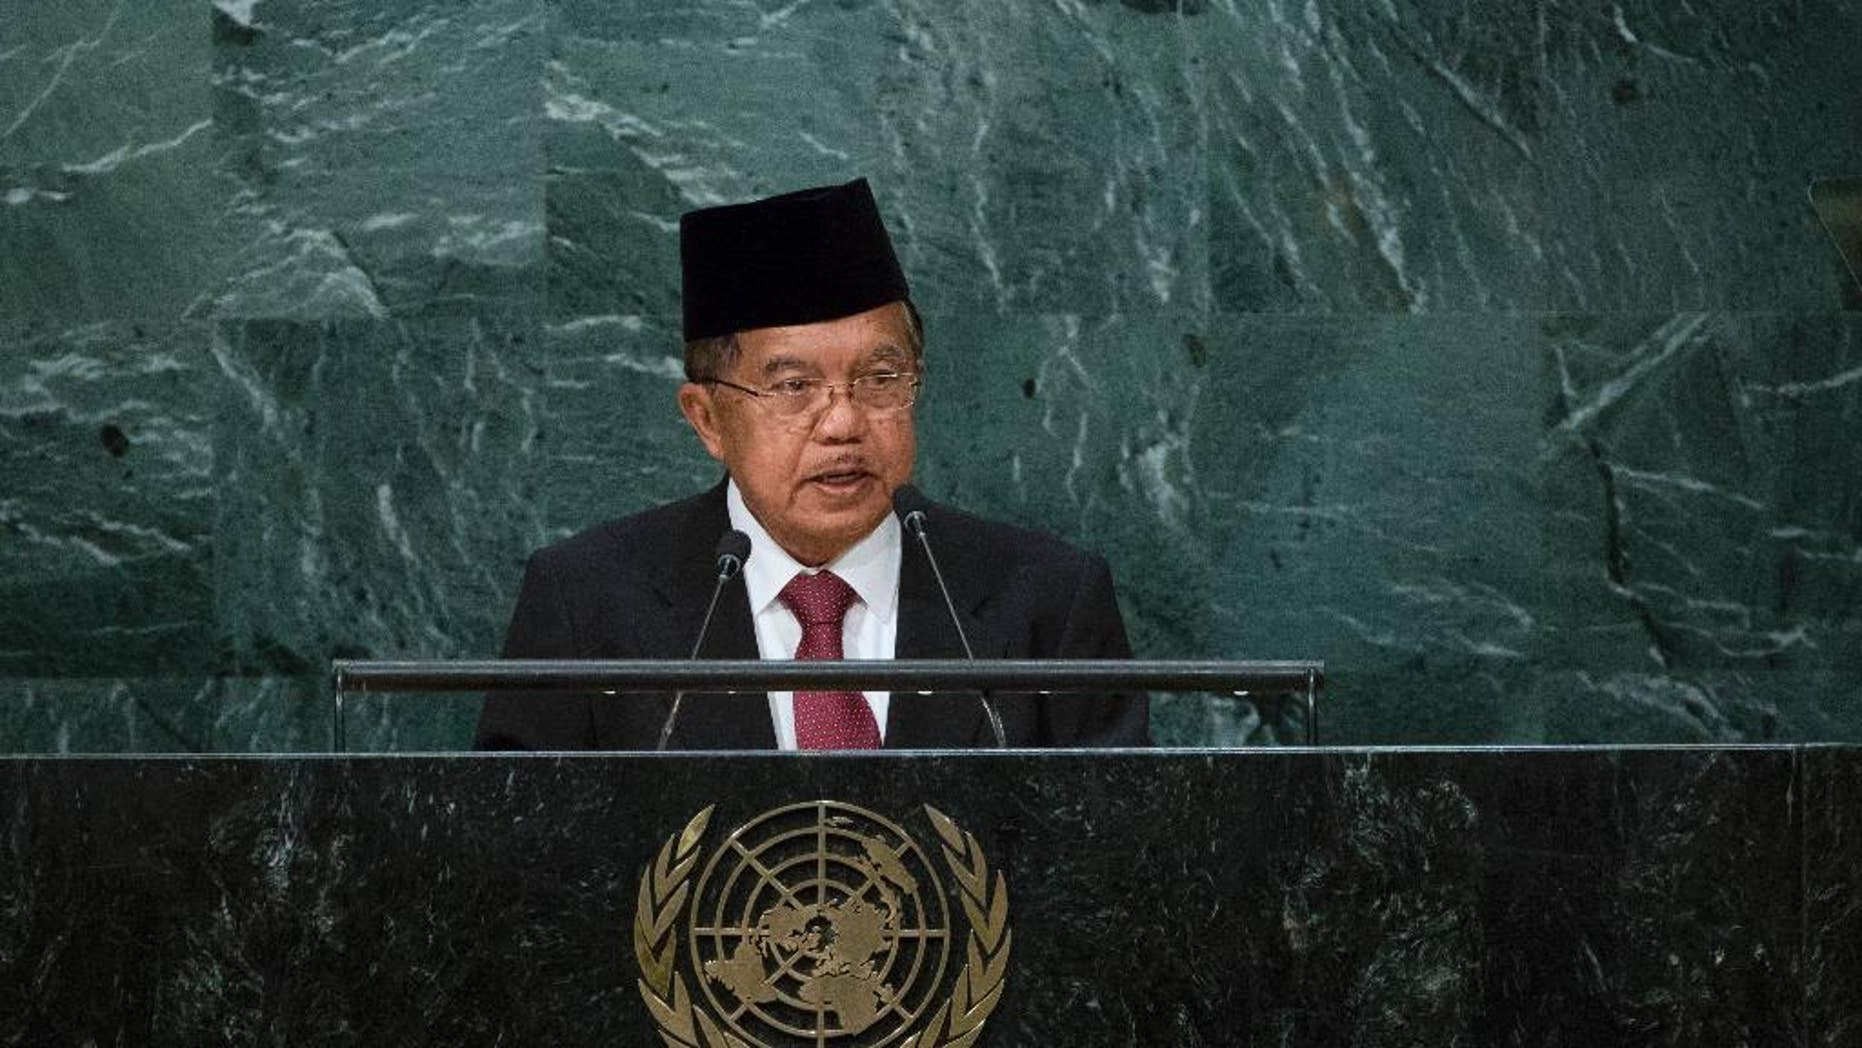 Indonesia's Vice President Muhammad Jusuf Kalla addresses the 71st session of the United Nations General Assembly, at U.N. headquarters, Friday, Sept. 23, 2016. (AP Photo/Craig Ruttle)